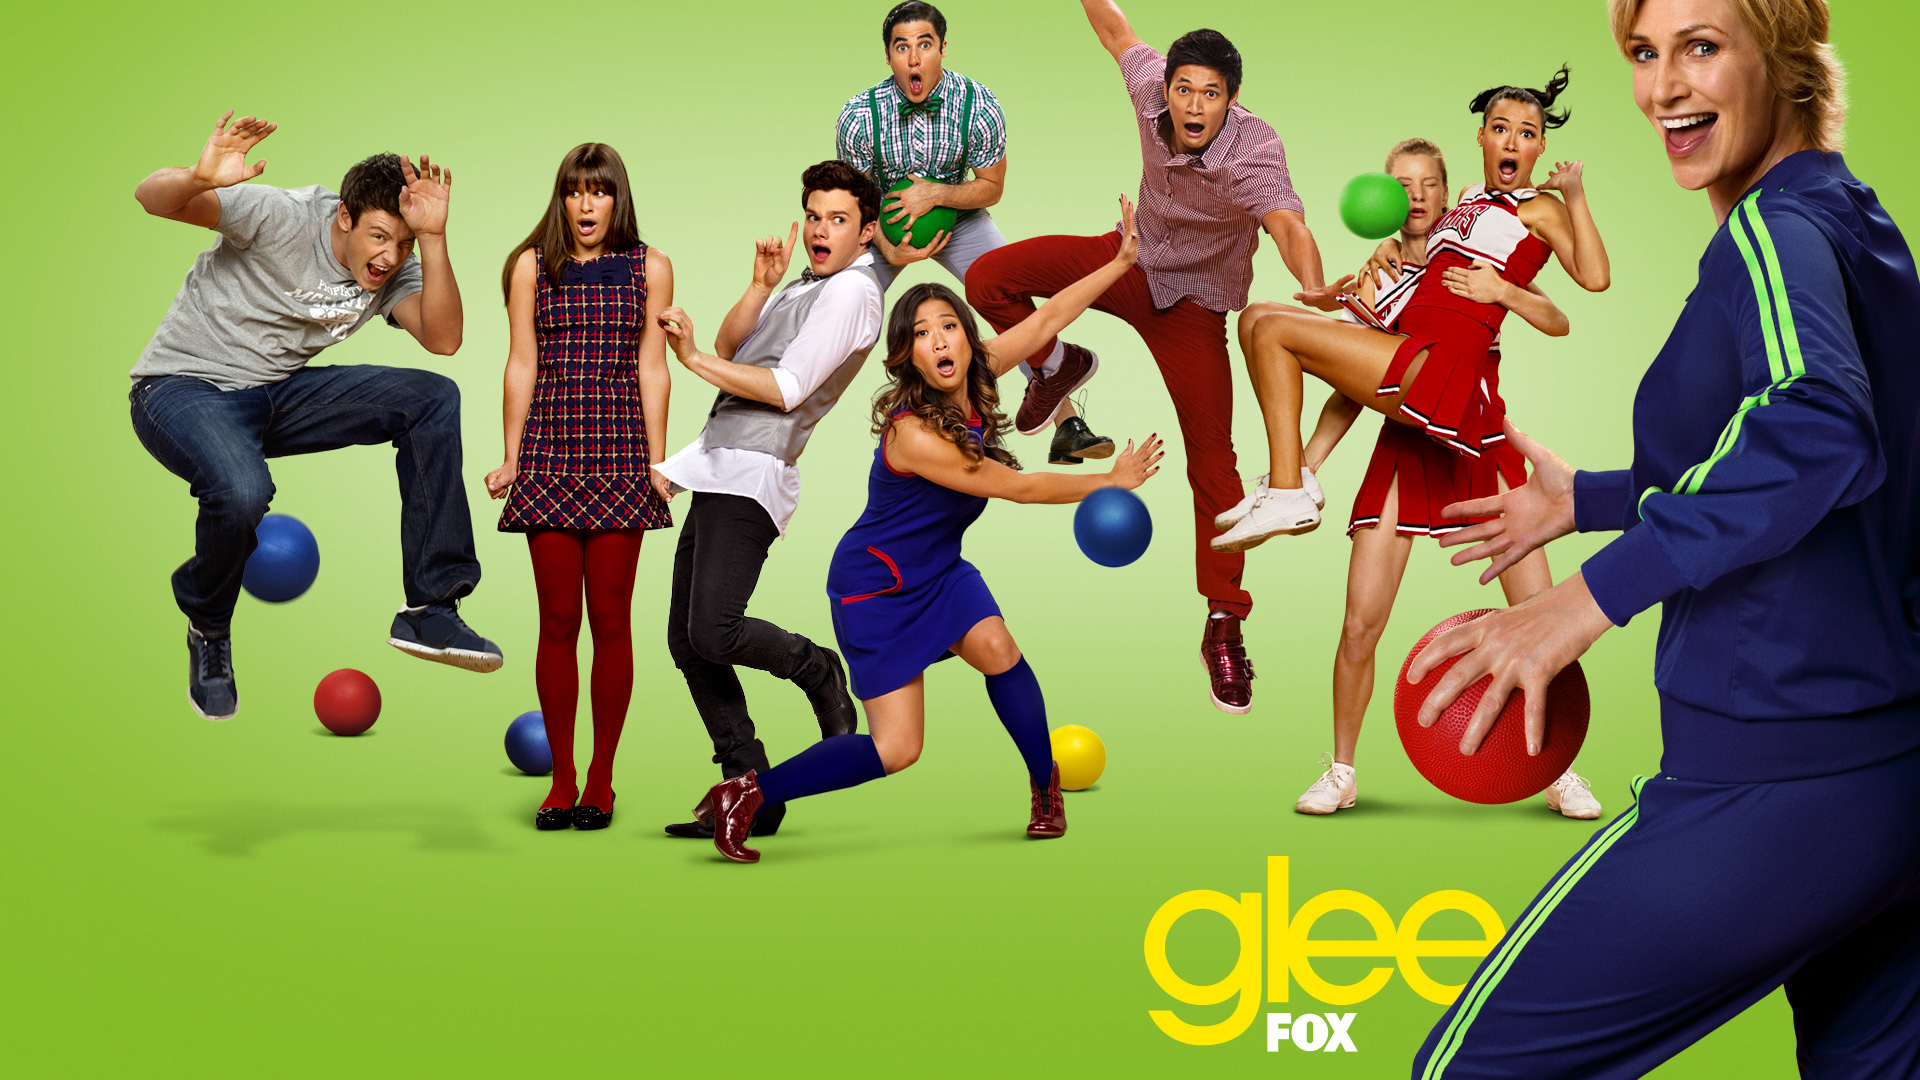 Glee Wallpapers Pictures Images